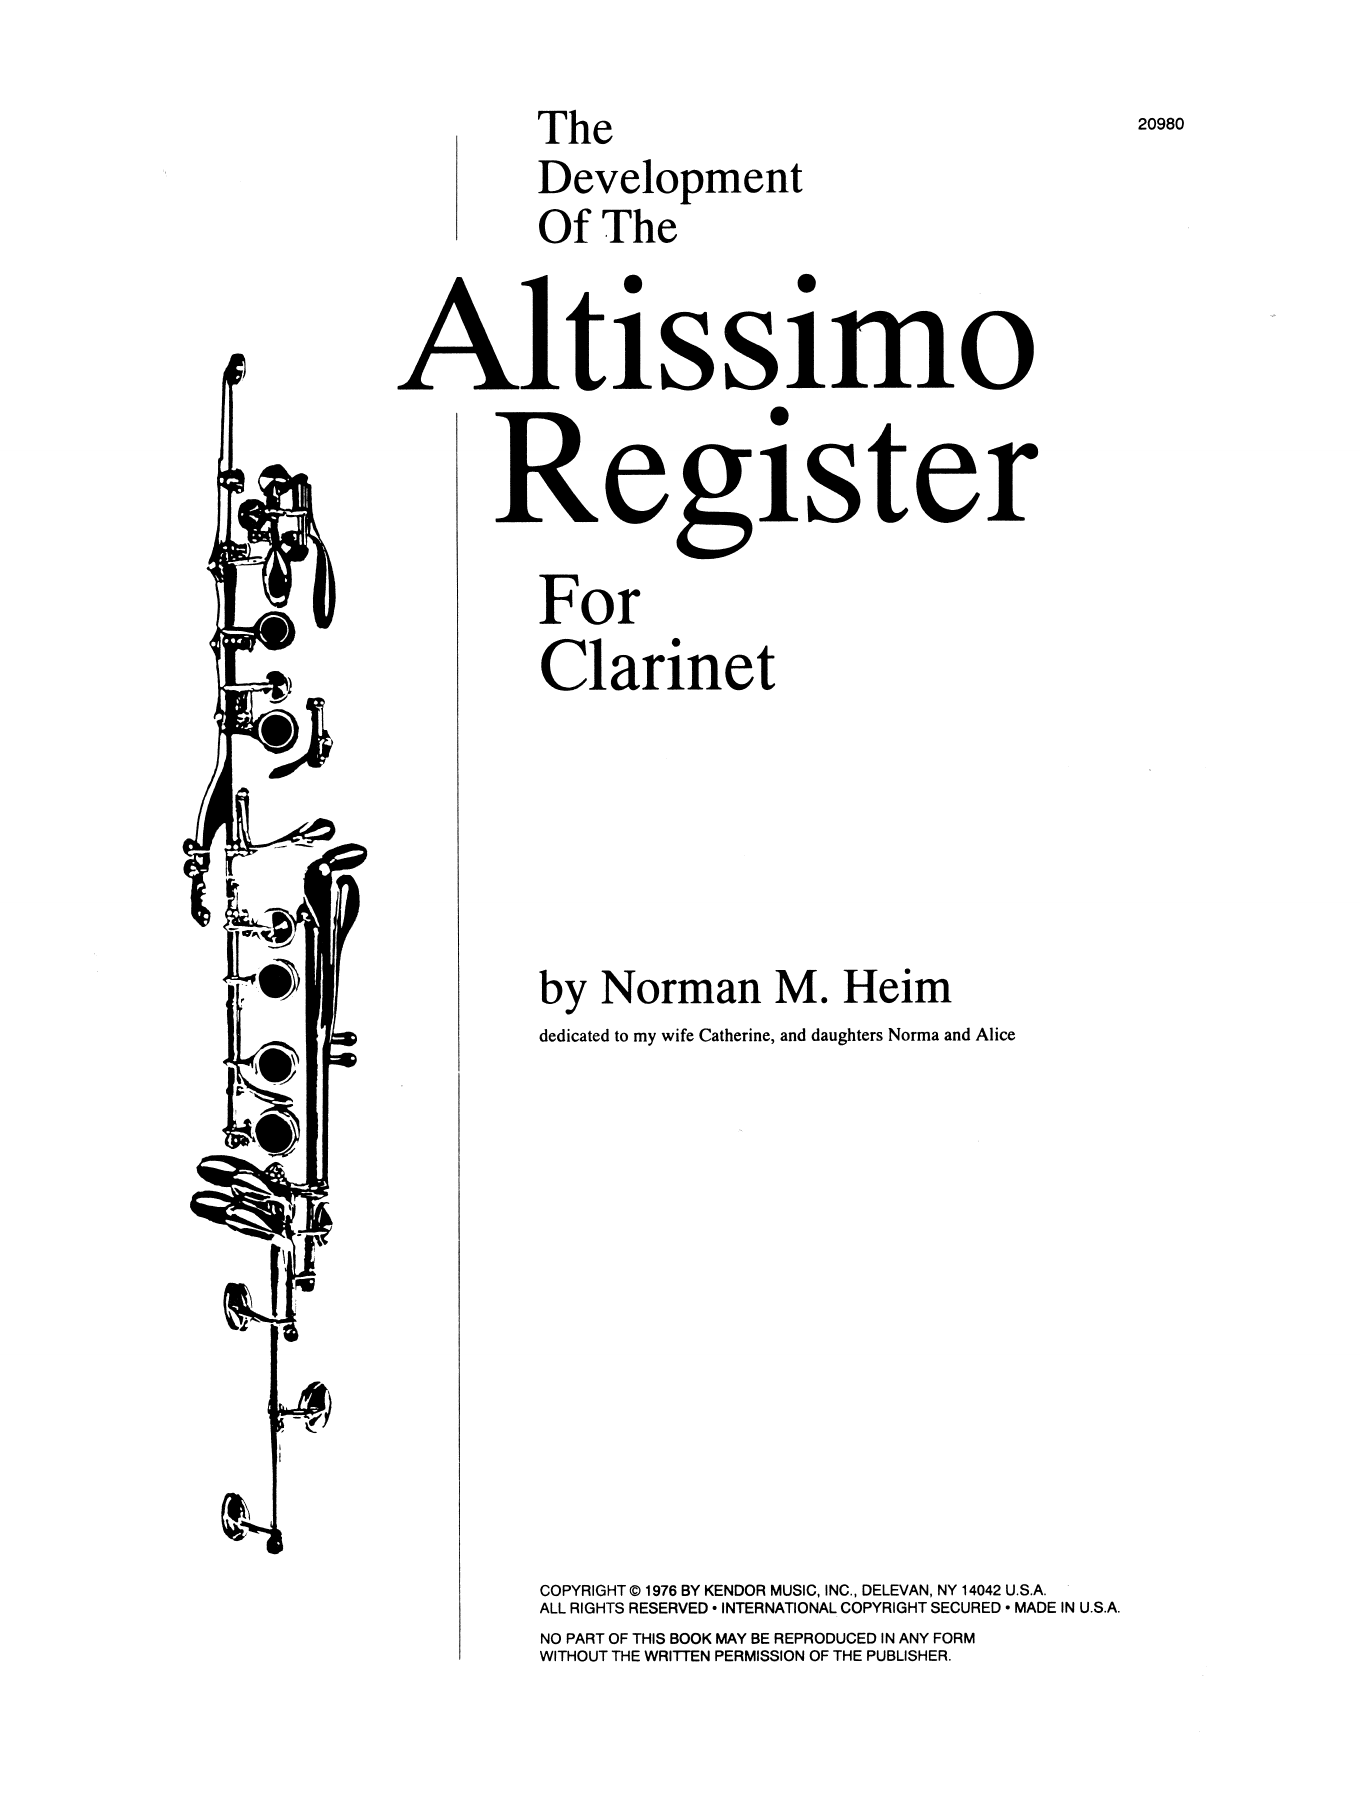 The Development Of The Altissimo Register For Clarinet Sheet Music